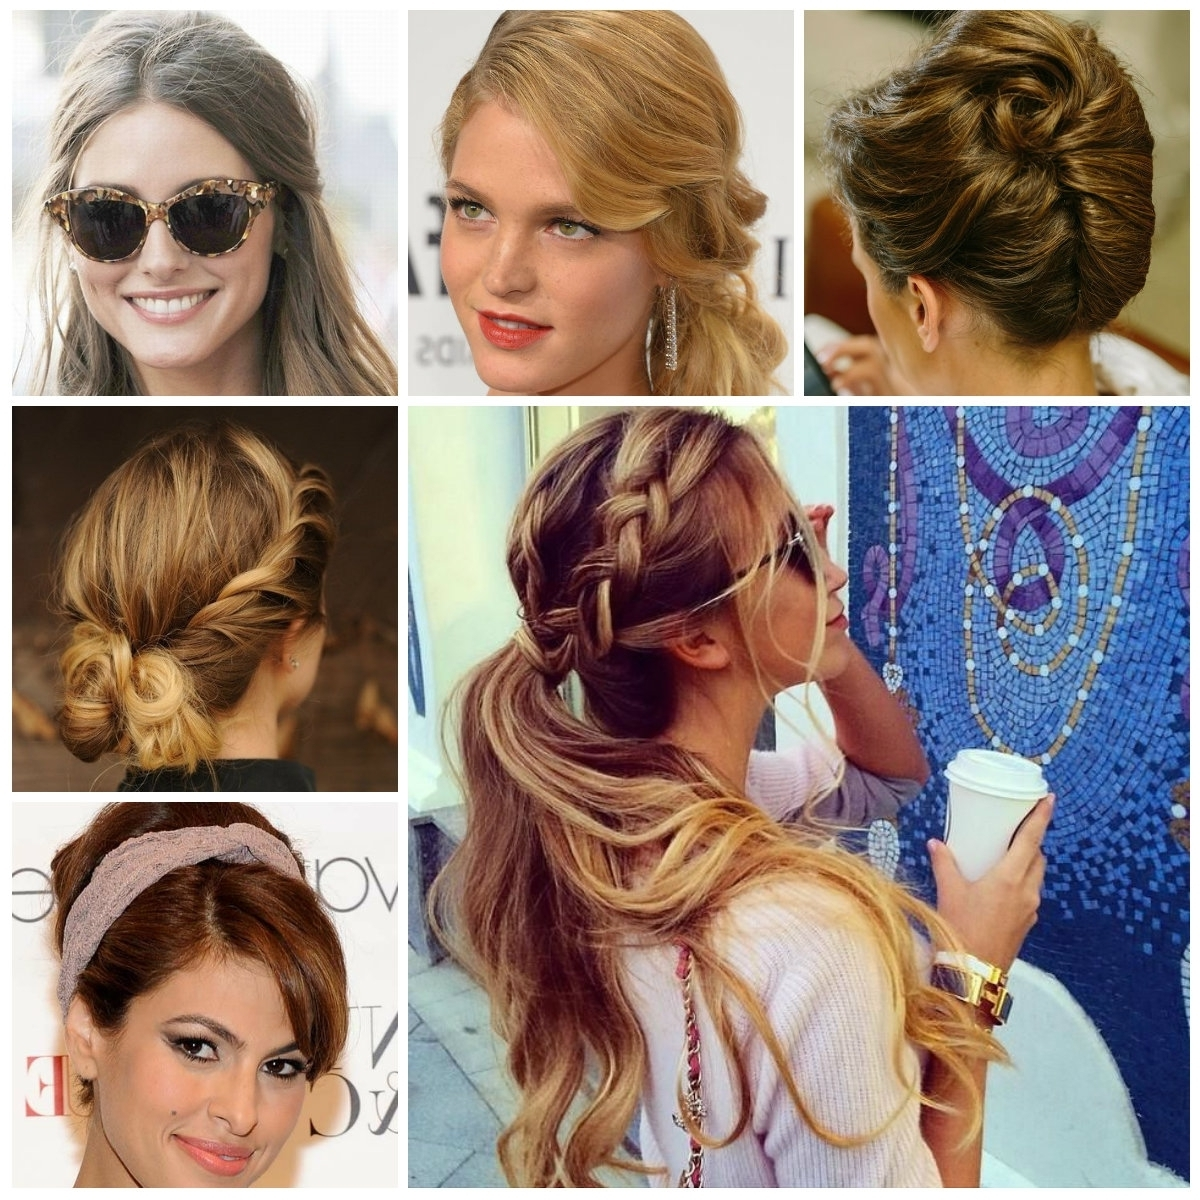 Easy Casual Updo Hairstyles For Long Hair – Women Medium Haircut With Regard To Cute And Easy Updo Hairstyles (View 10 of 15)